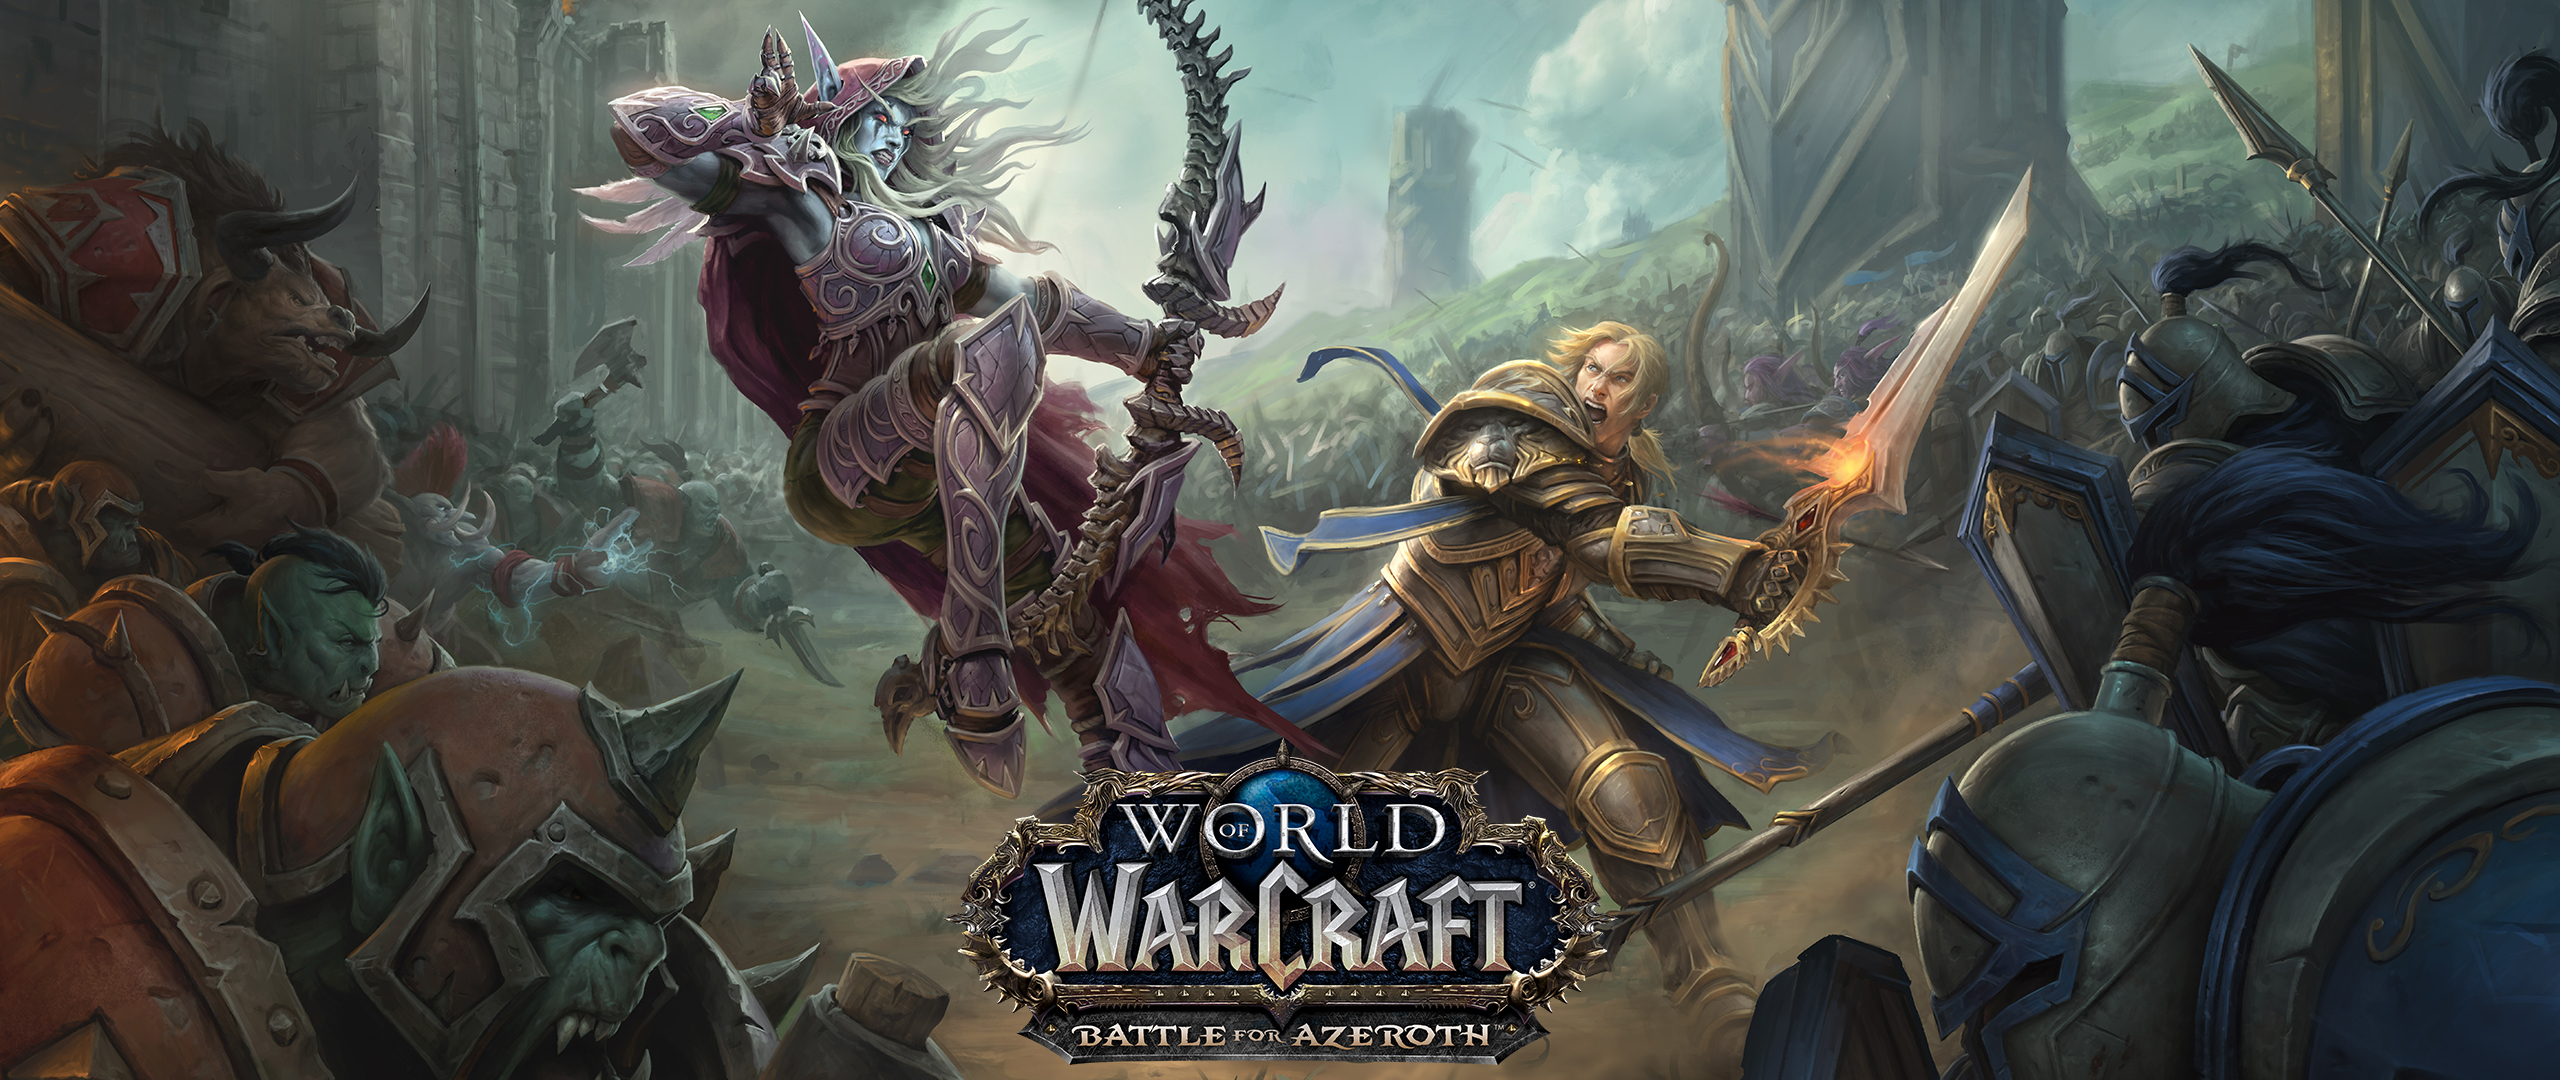 World of Warcraft: Returning WoW players can't wait to play BfA for